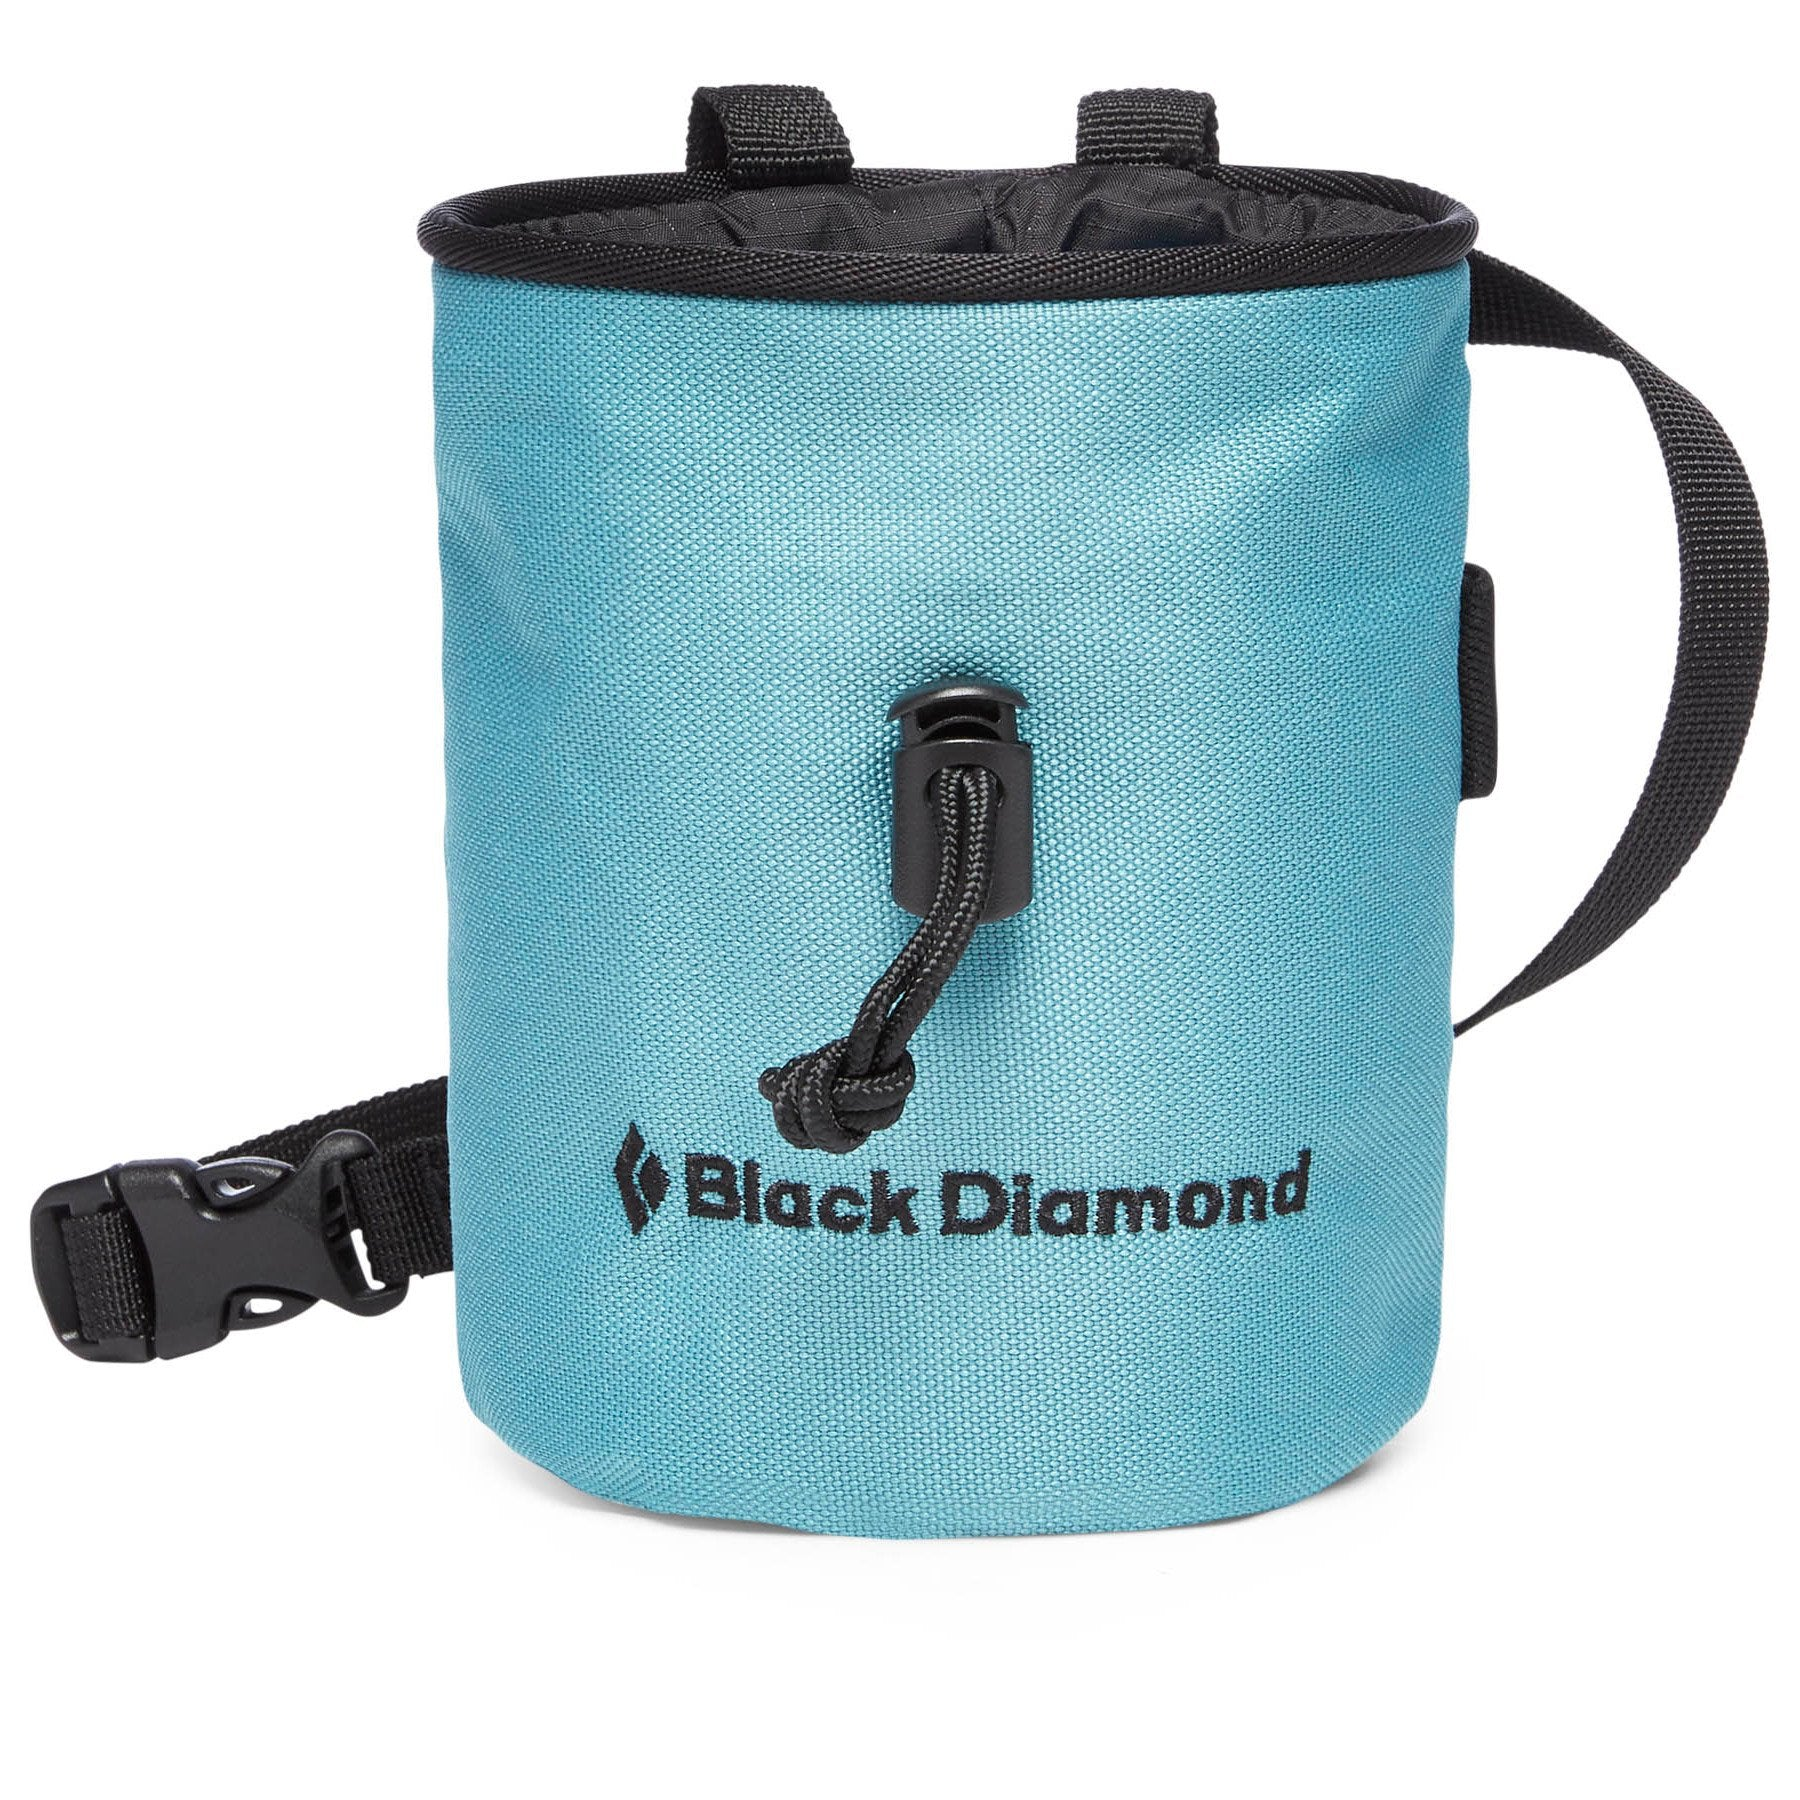 Black Diamond Mojo Chalk Bag, front view in light blue colour